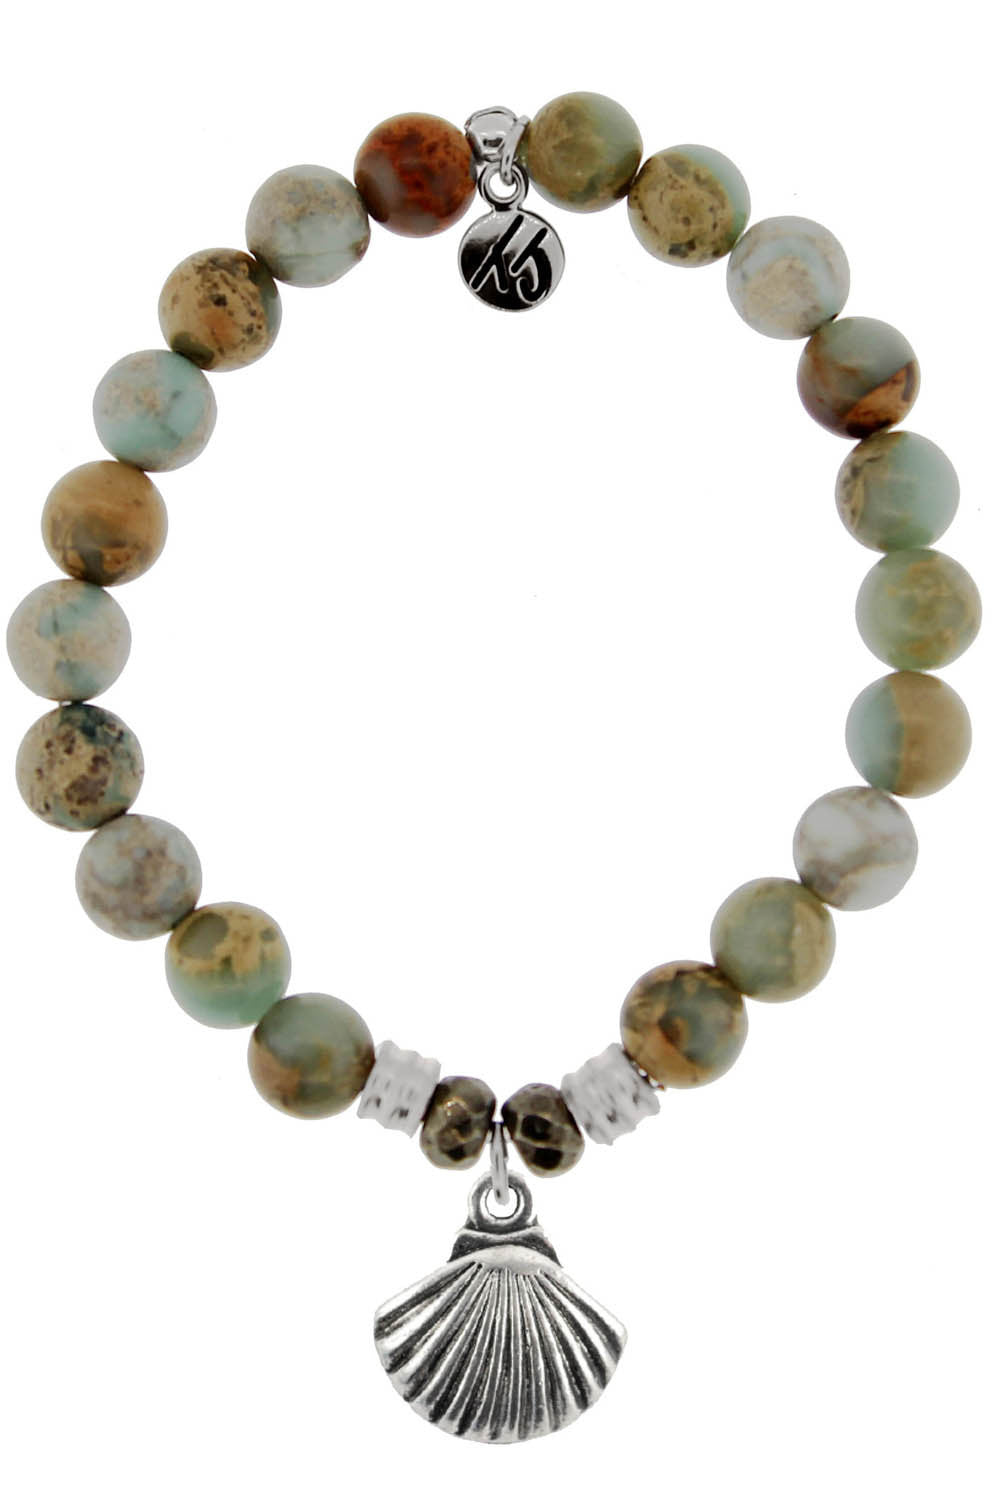 TJ Beaded Bracelet - Serpentine Stones